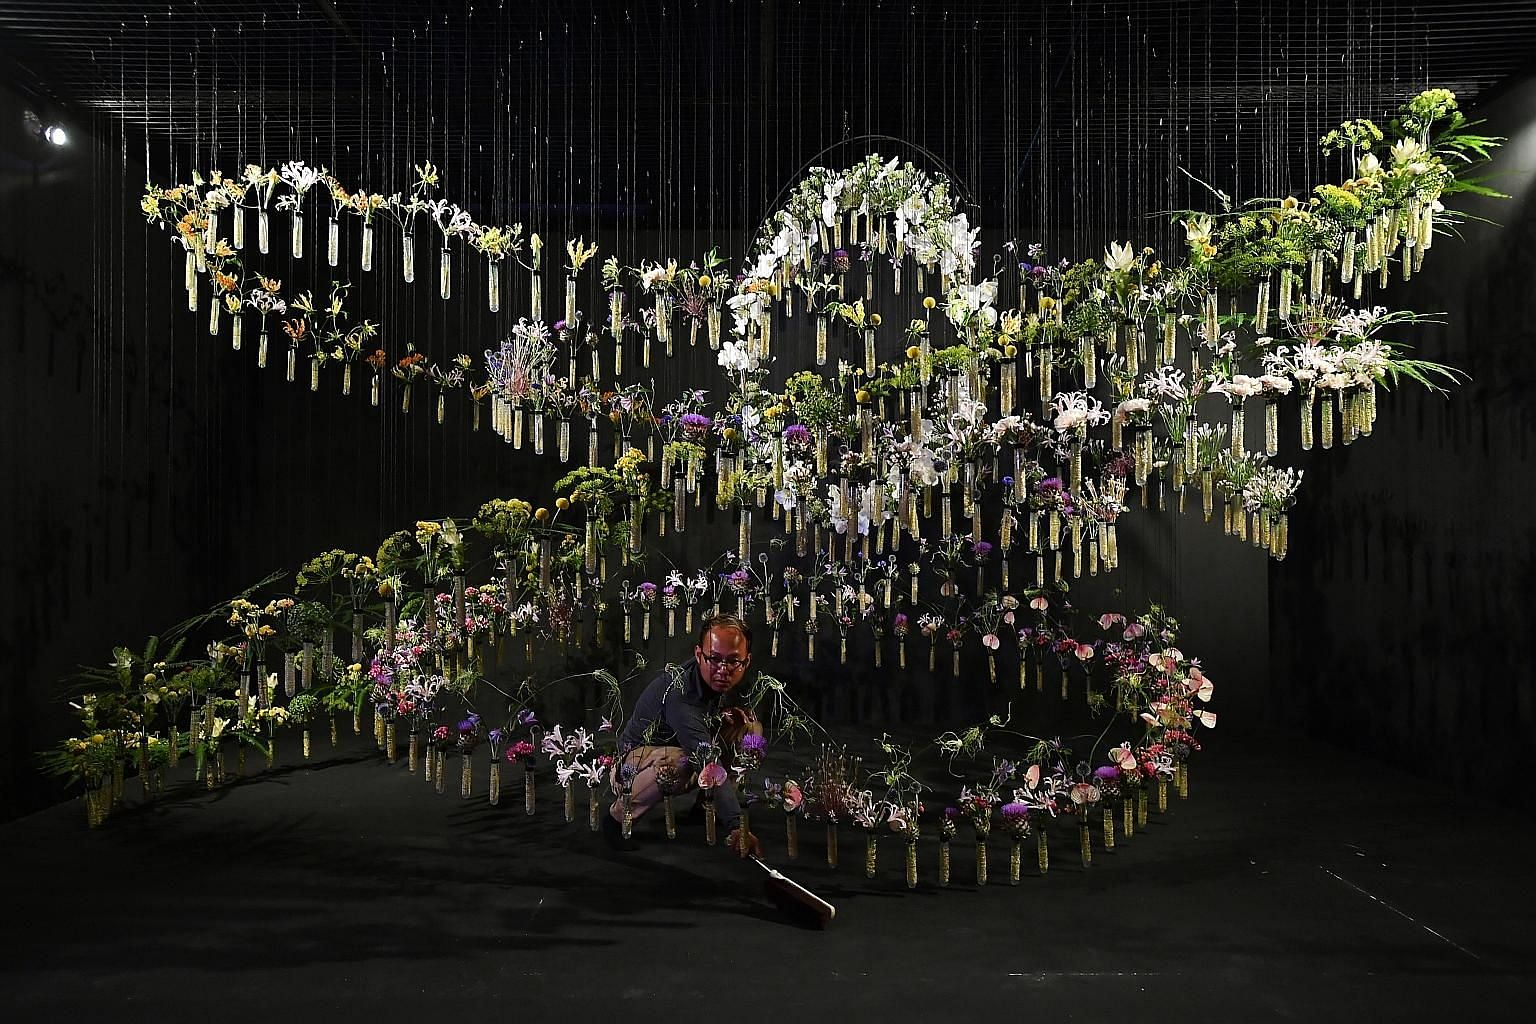 Left: Preparing cut flowers to be inserted into the test tubes. The suspended test tubes of the installation represent new life floating inside an amniotic sac. Above: Freelance florist Ivy Tay helping to prepare flowers for insertion into test tubes